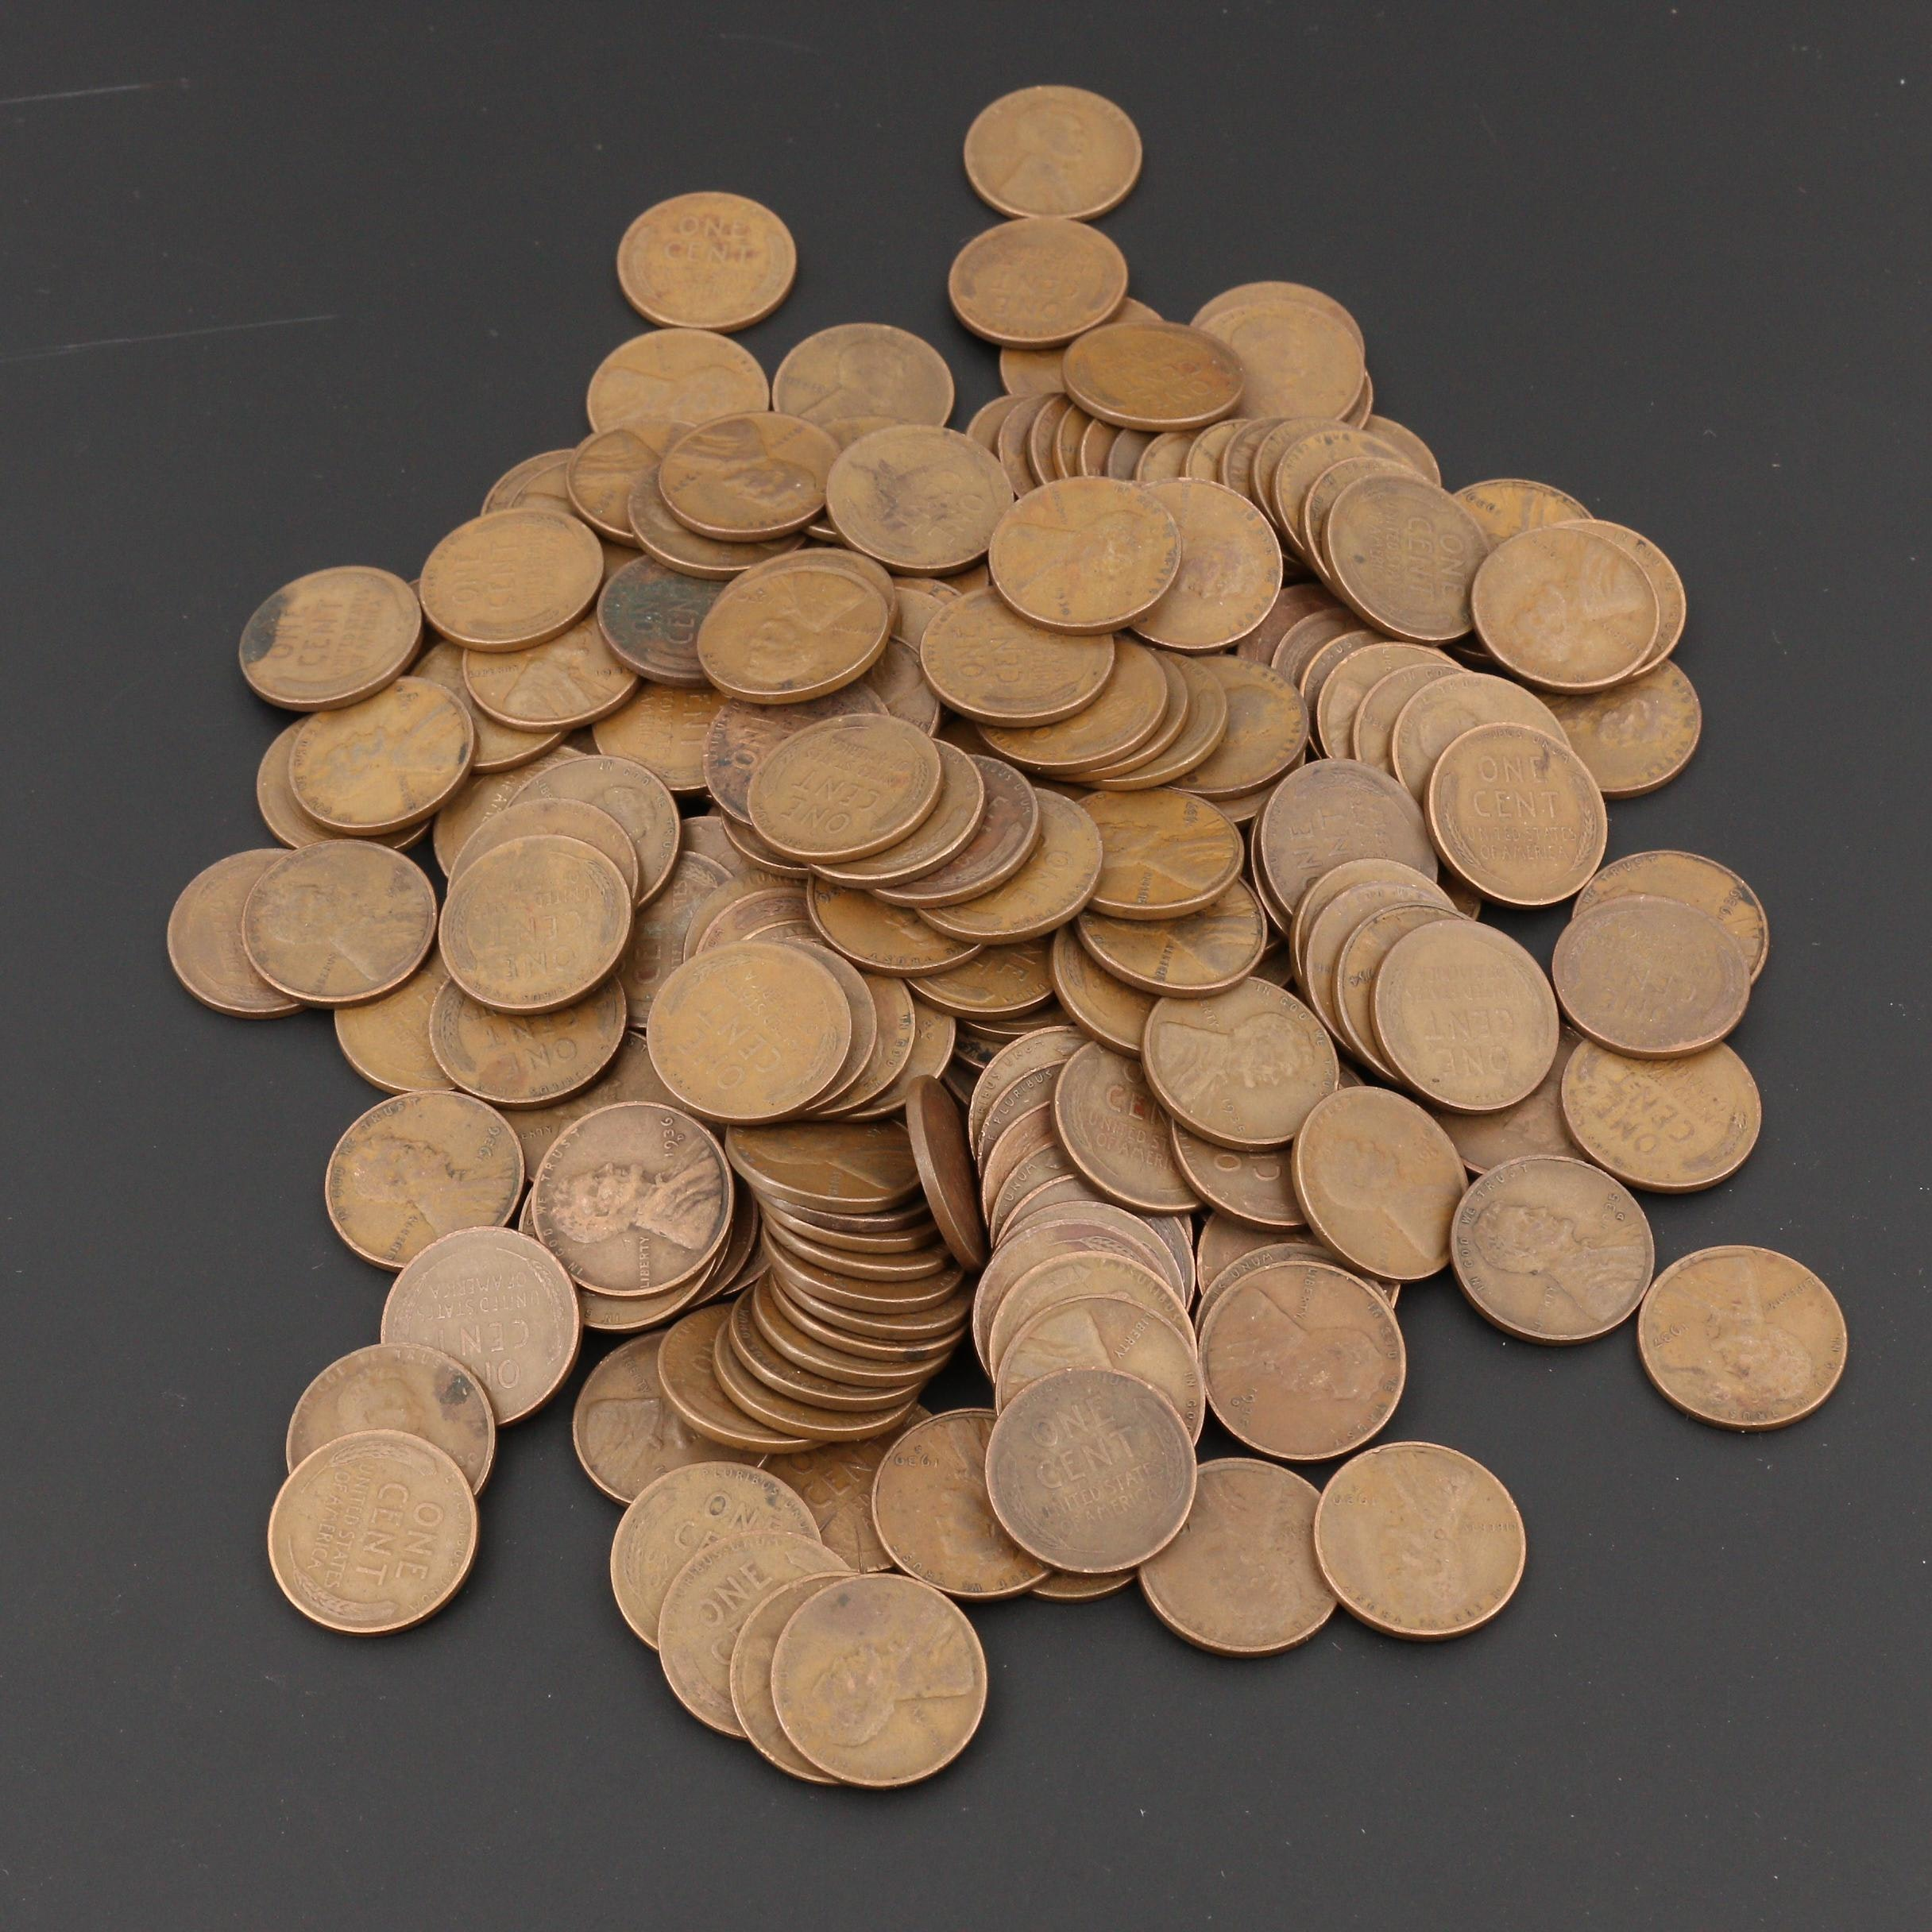 200 Lincoln Wheat Cents From the 1930s